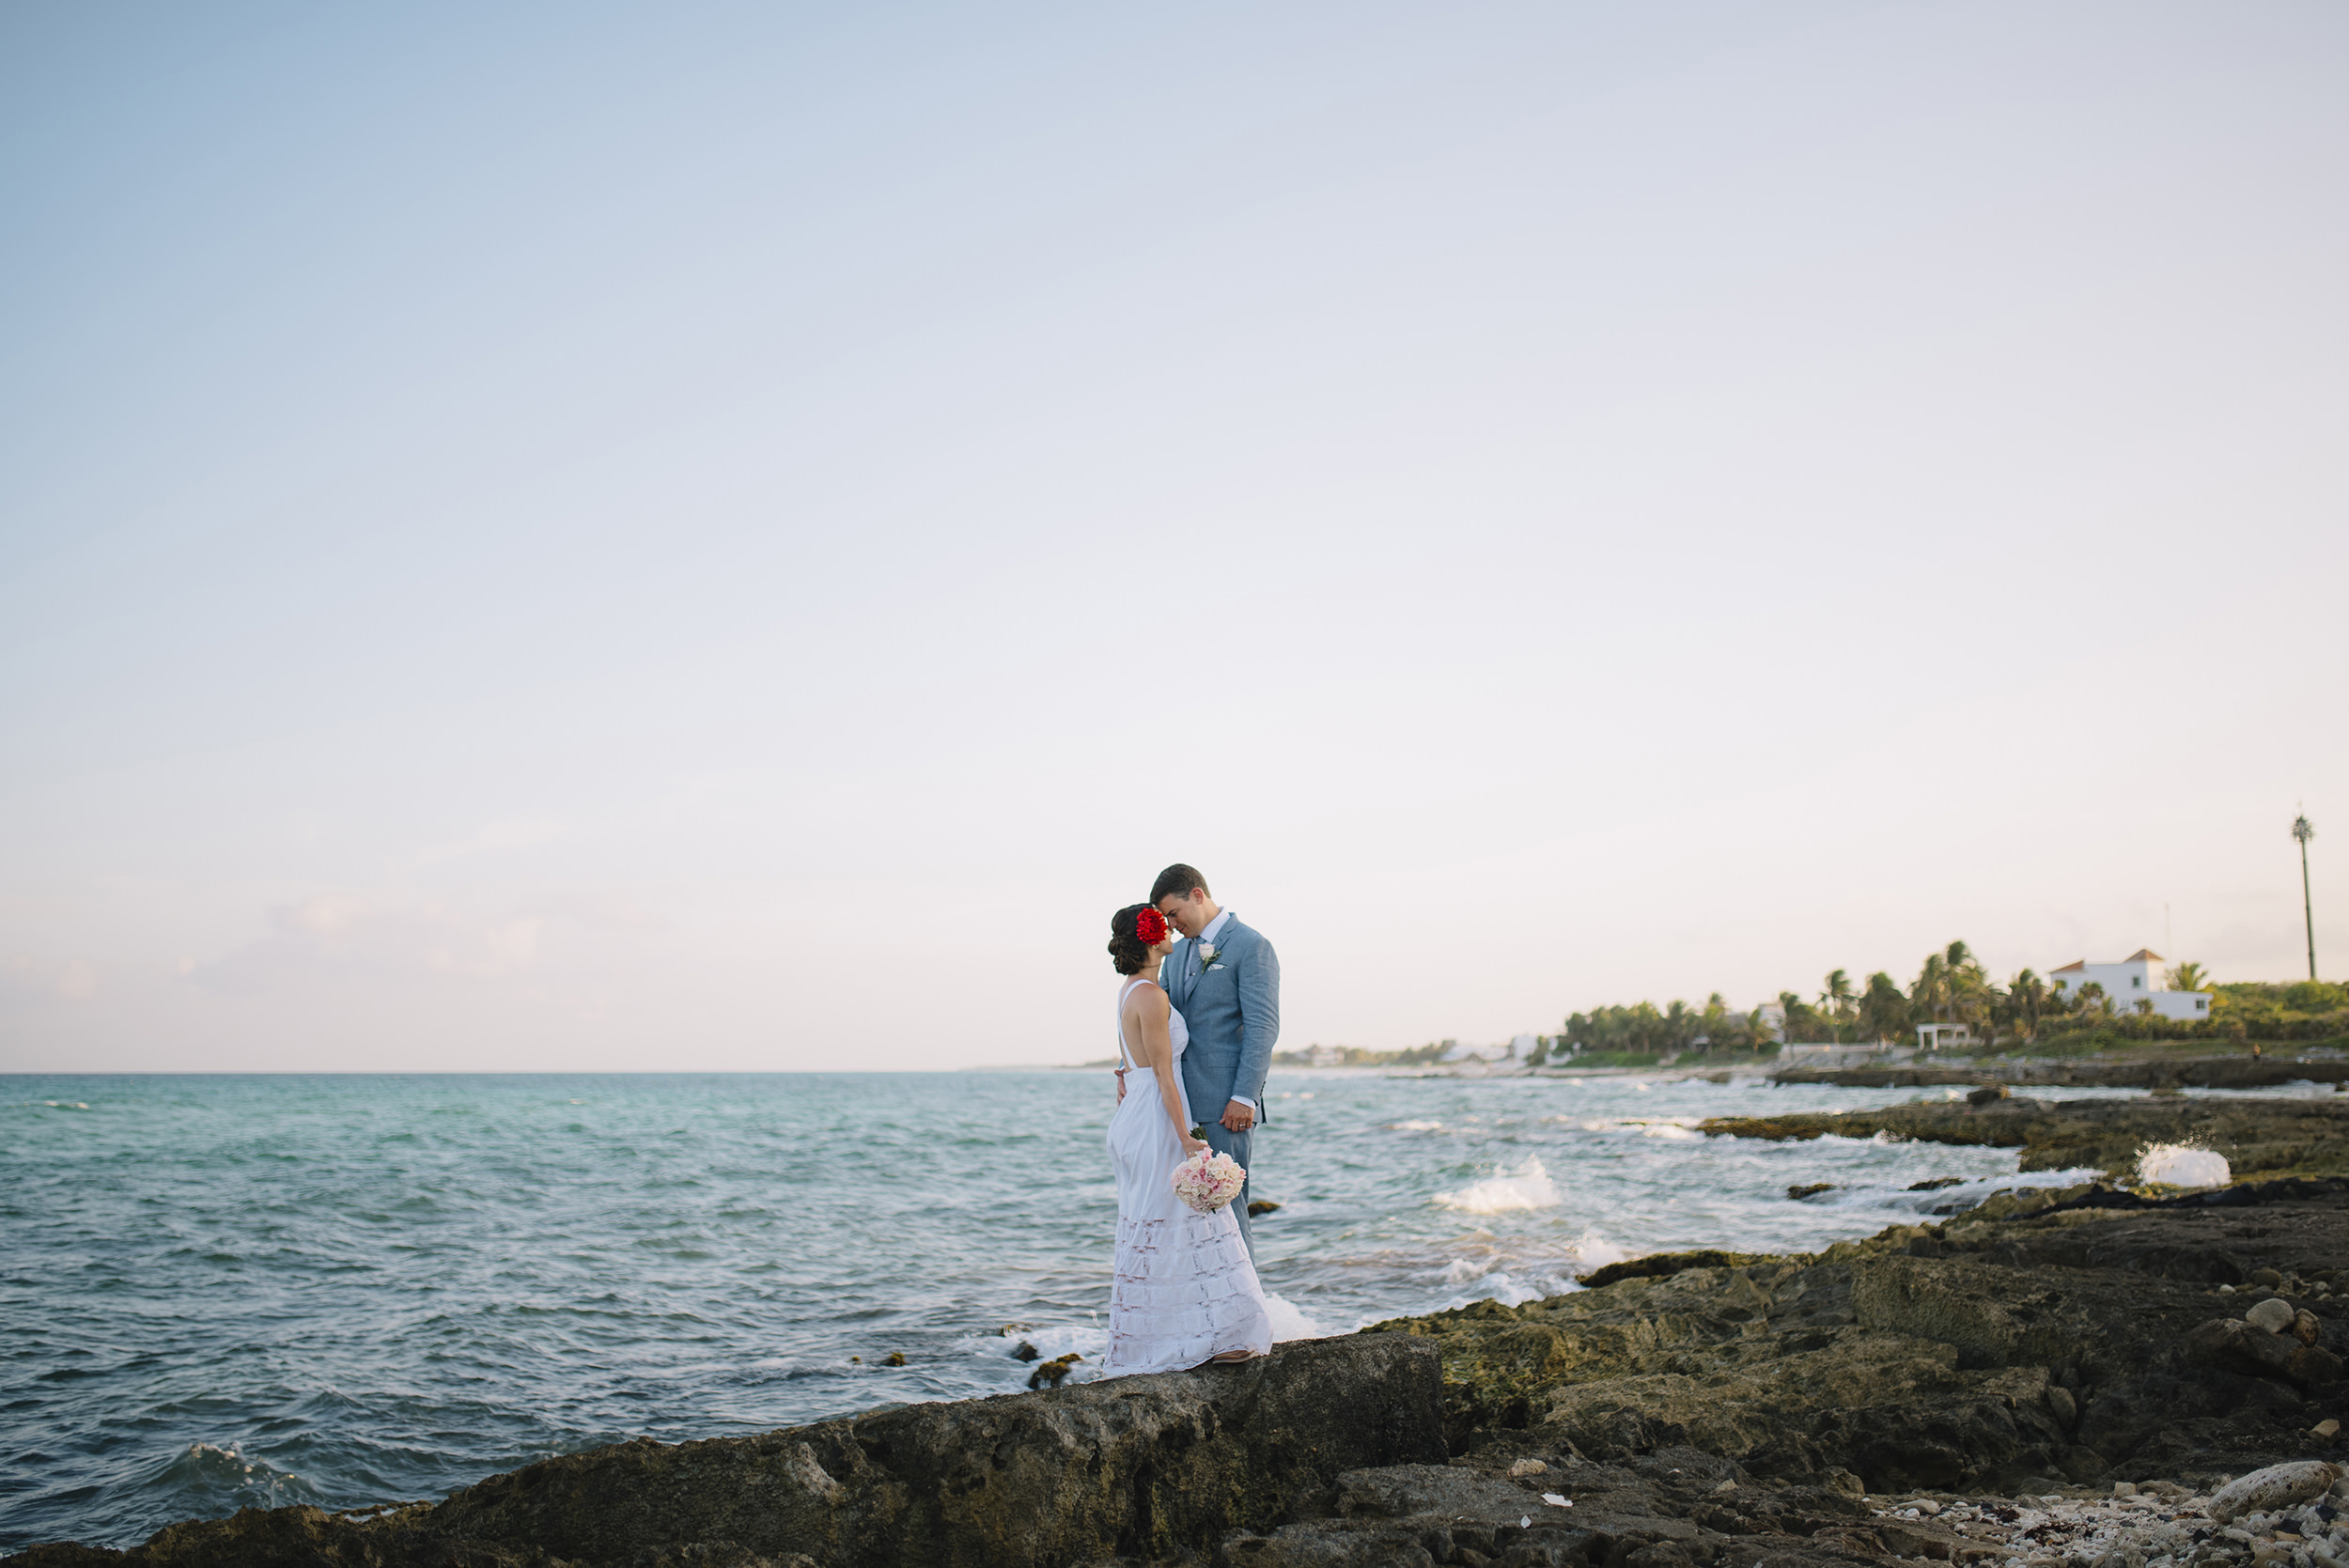 Colby-and-Jess-Intimate-Beach-Wedding-Destination-Cancun-Mexico73.jpg